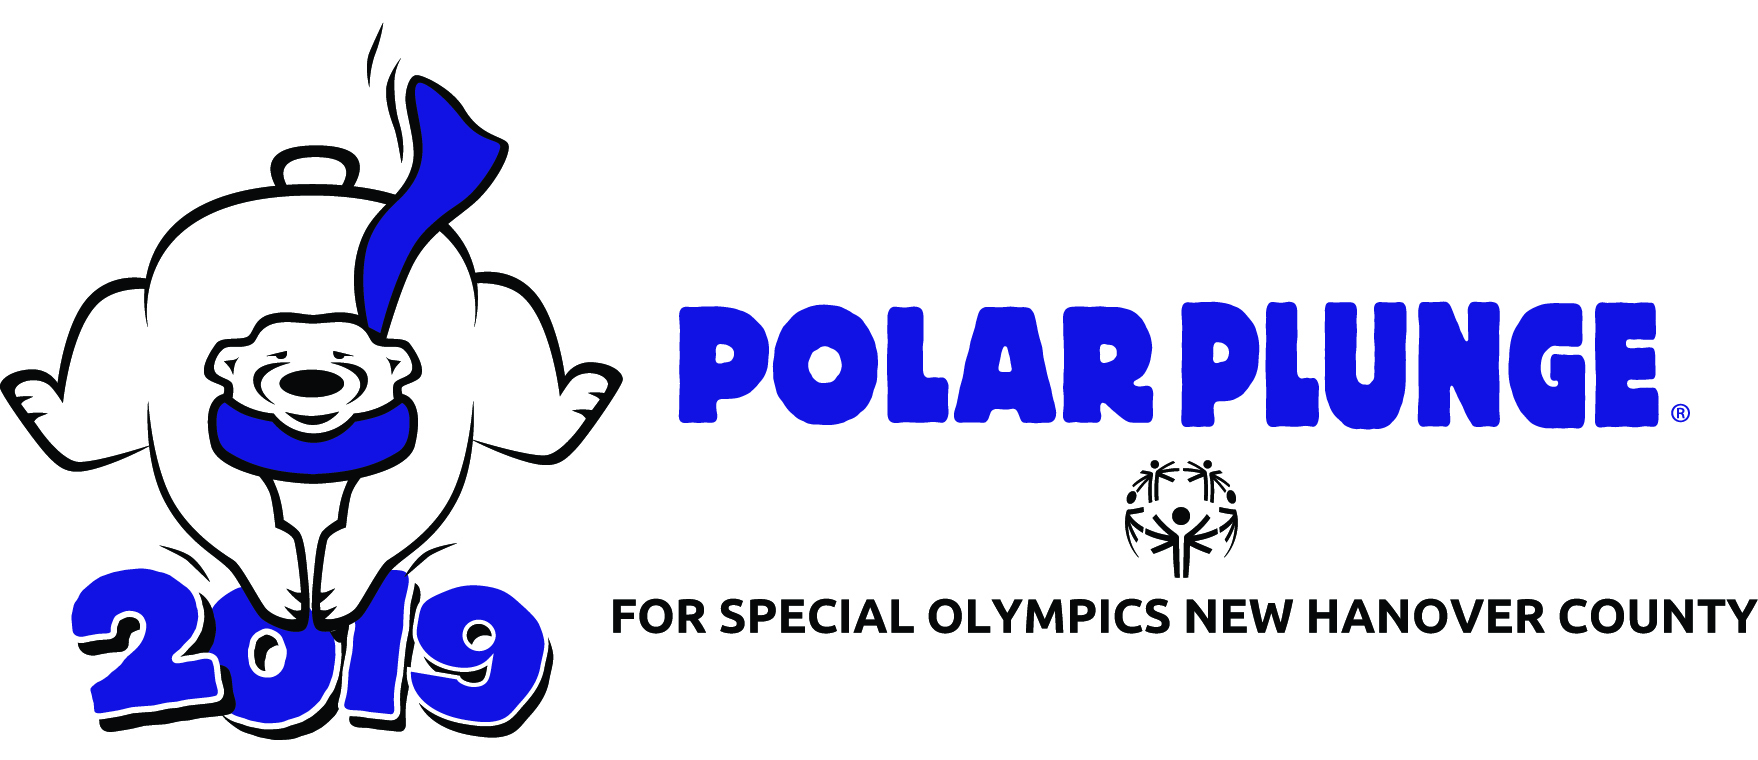 Polar Plunge 5K – February 23, 2019 | NC Race Timing and